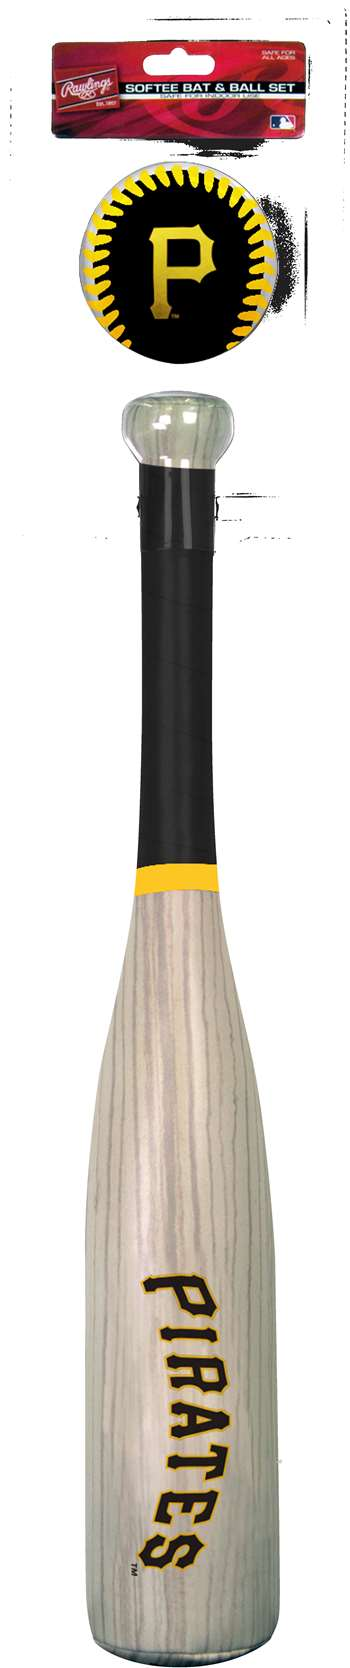 MLB Pittsburgh Pirates Grand Slam Softee Baseball Bat and Ball Set (Wood Grain)